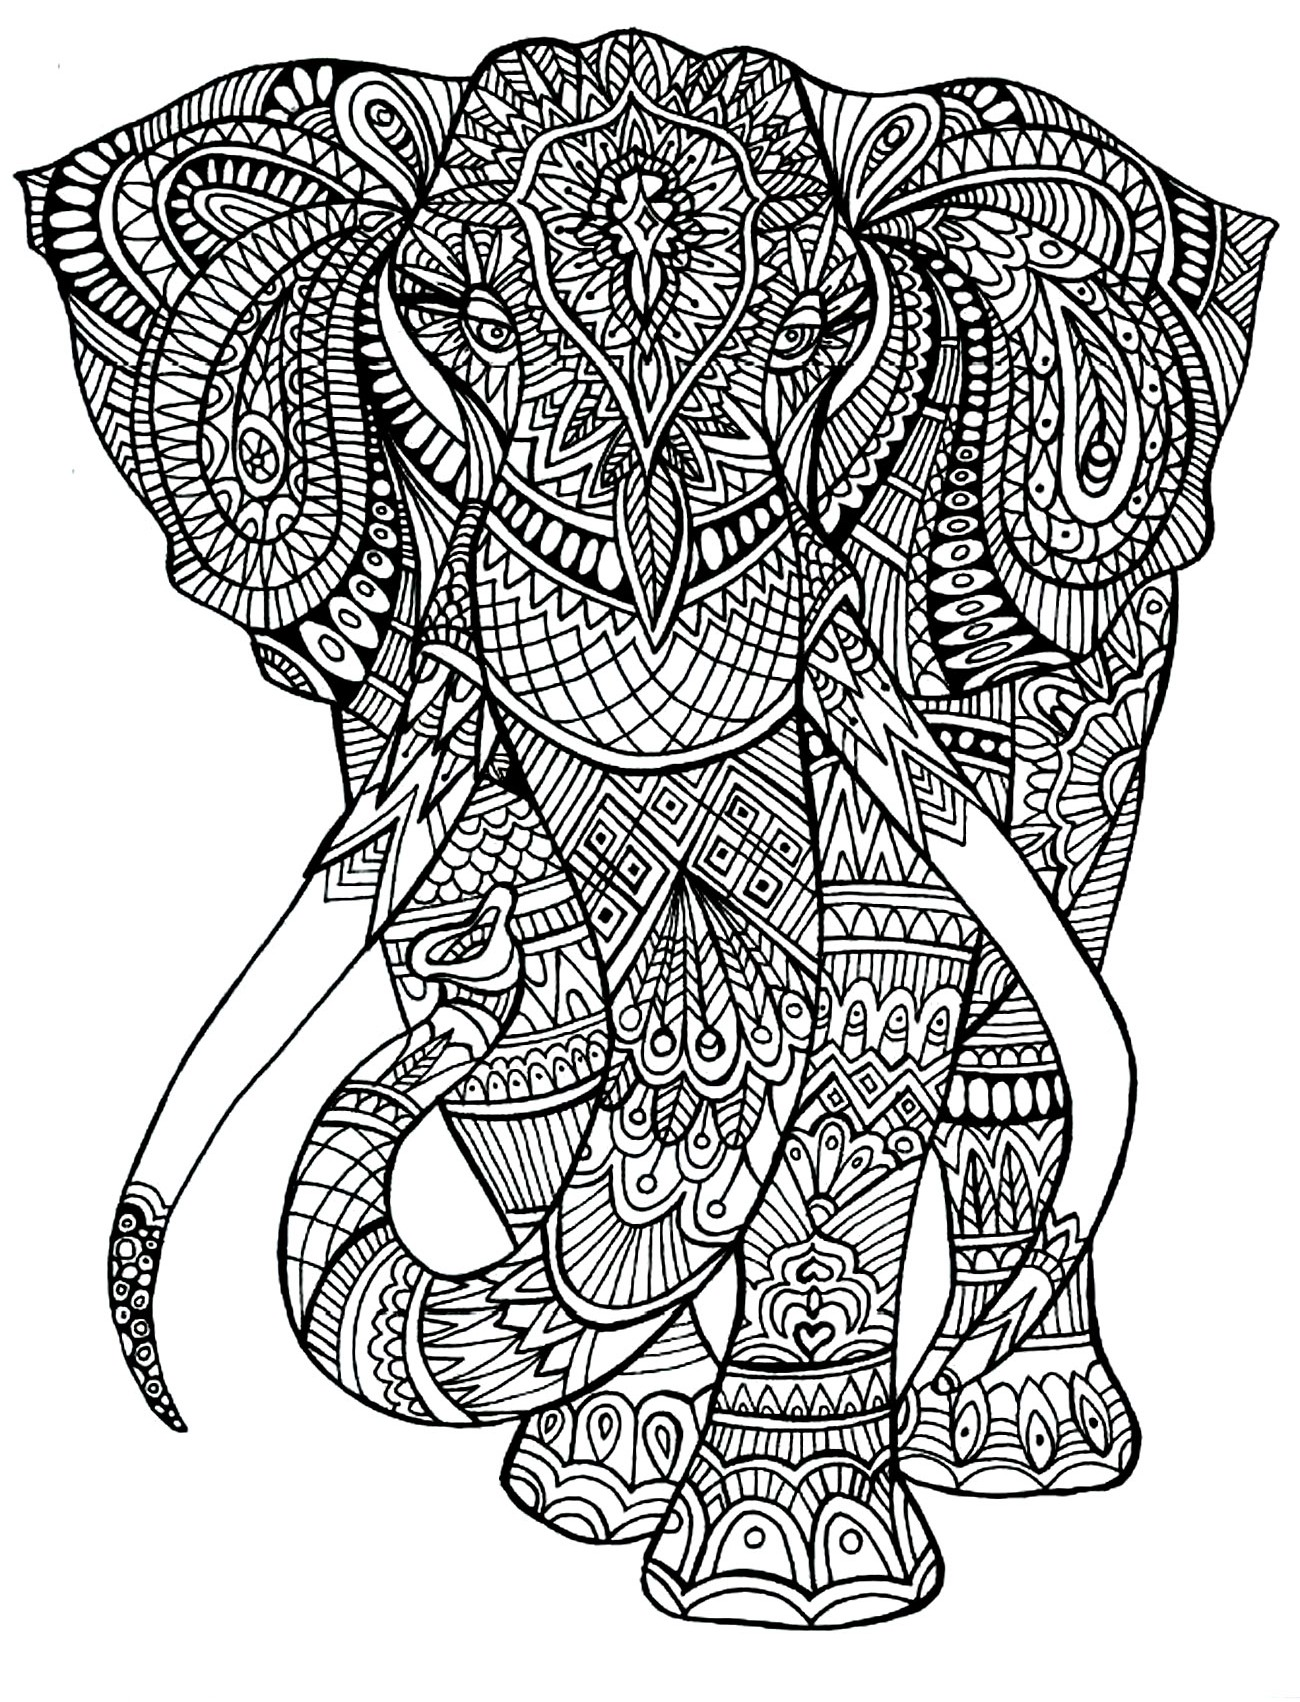 Colouring in for adults why - Coloring Adult Elephant Patterns